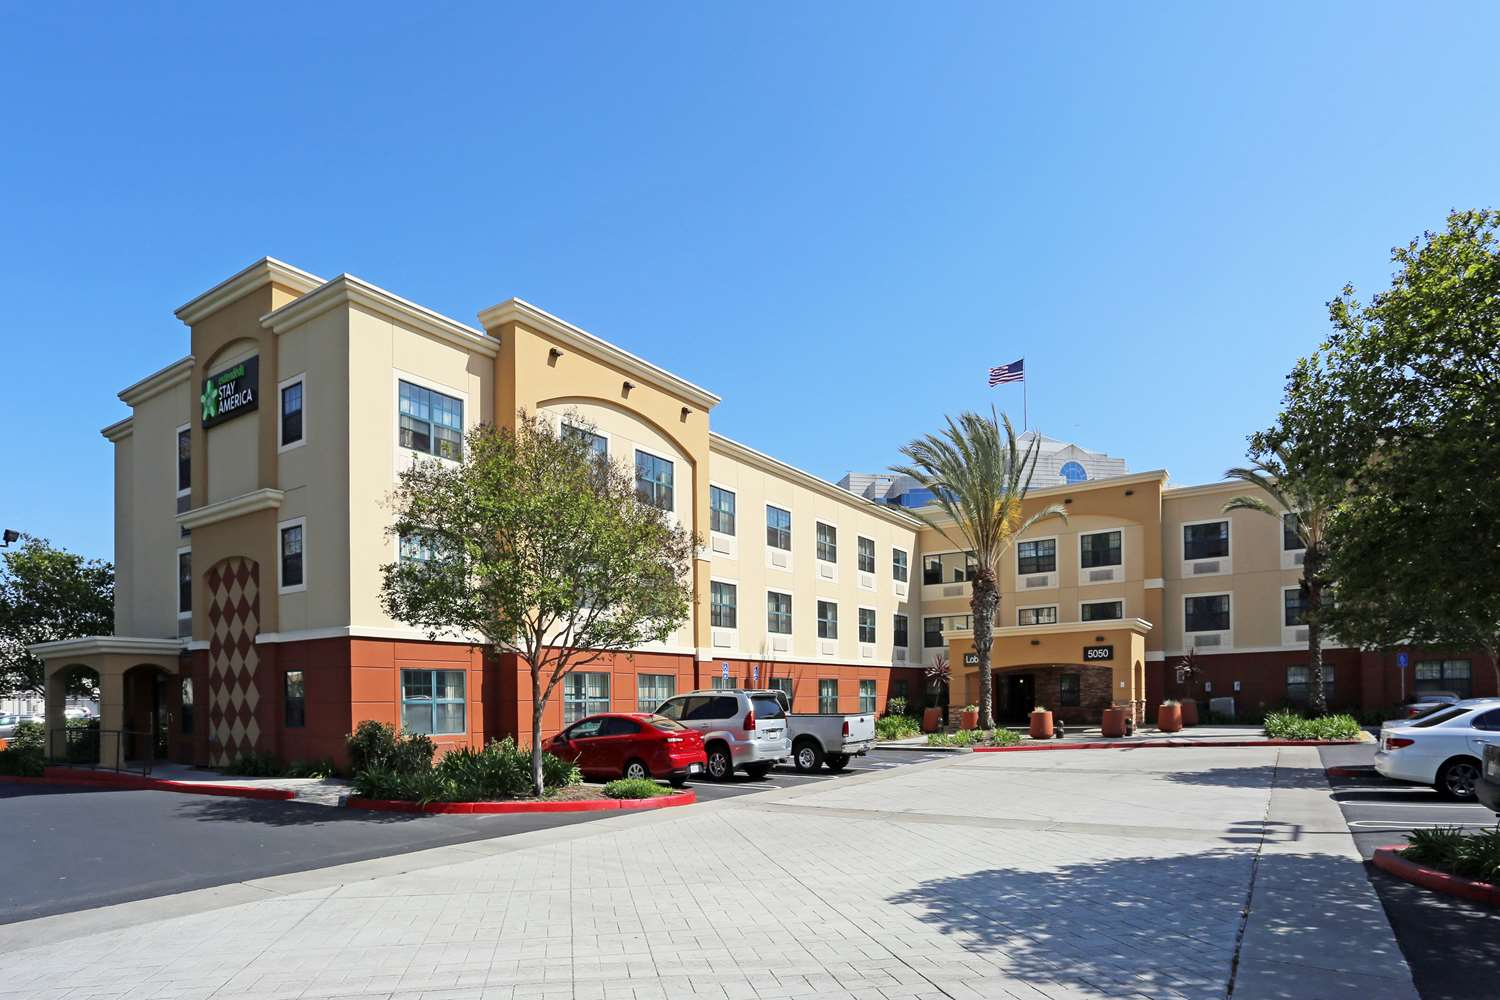 Extended Stay Hotels Seal Beach California